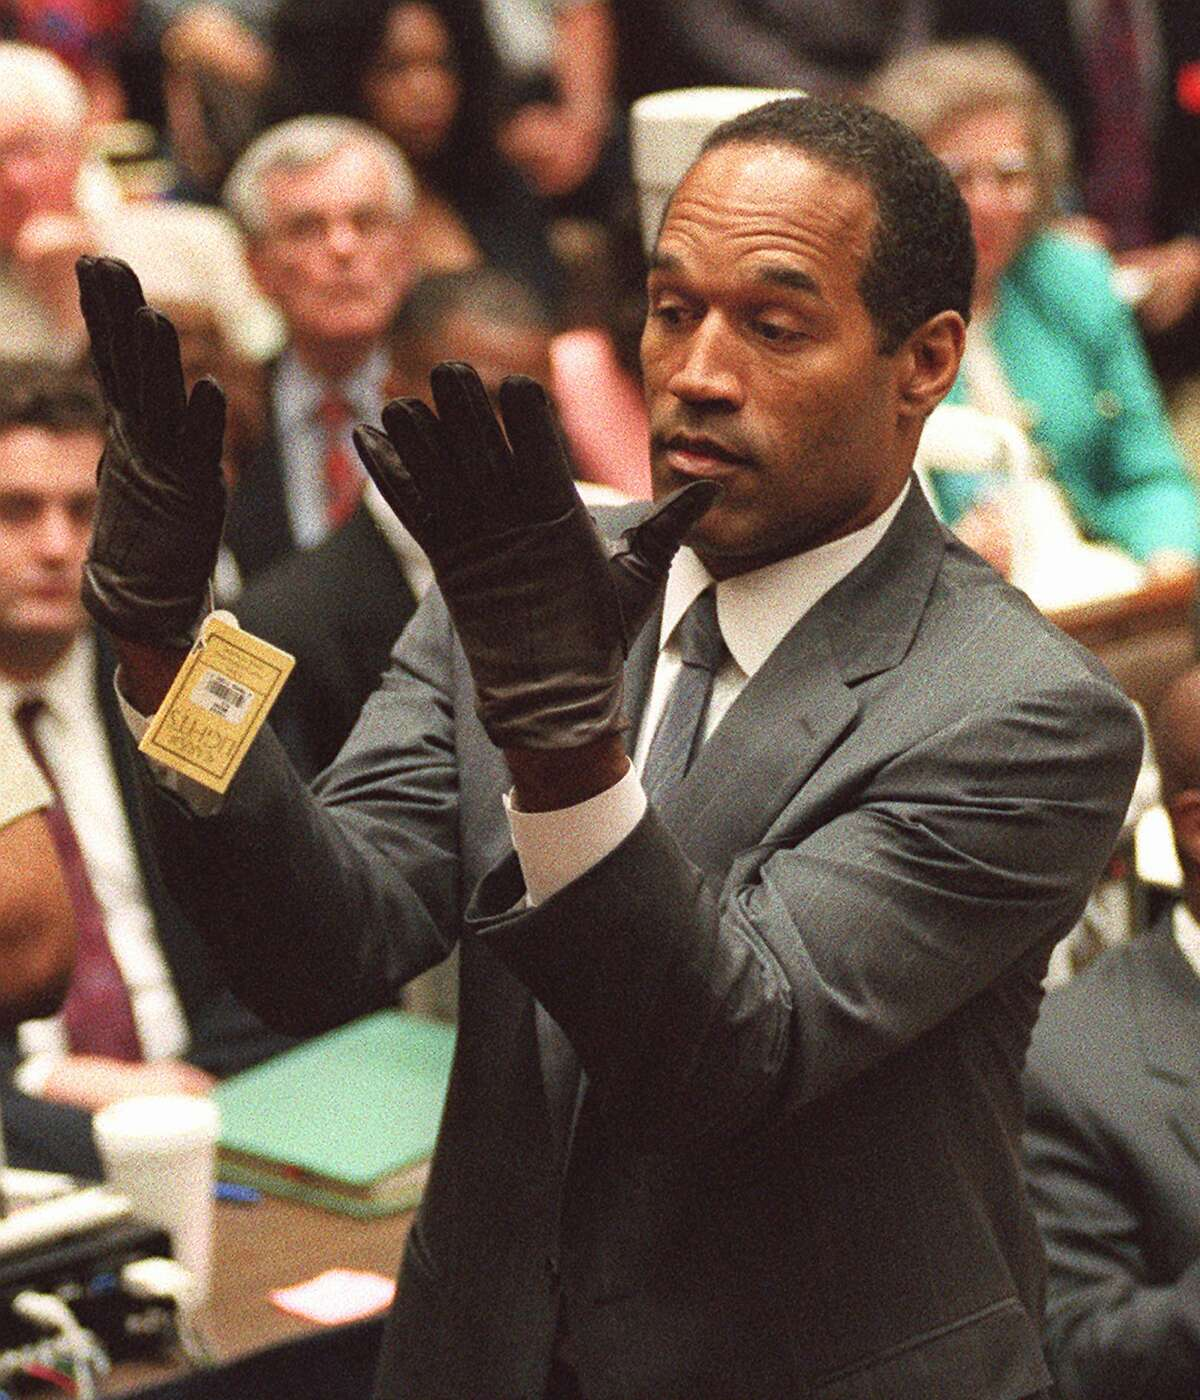 3. A screenwriter who testified against O.J. Simpson later helped write Simpson's book